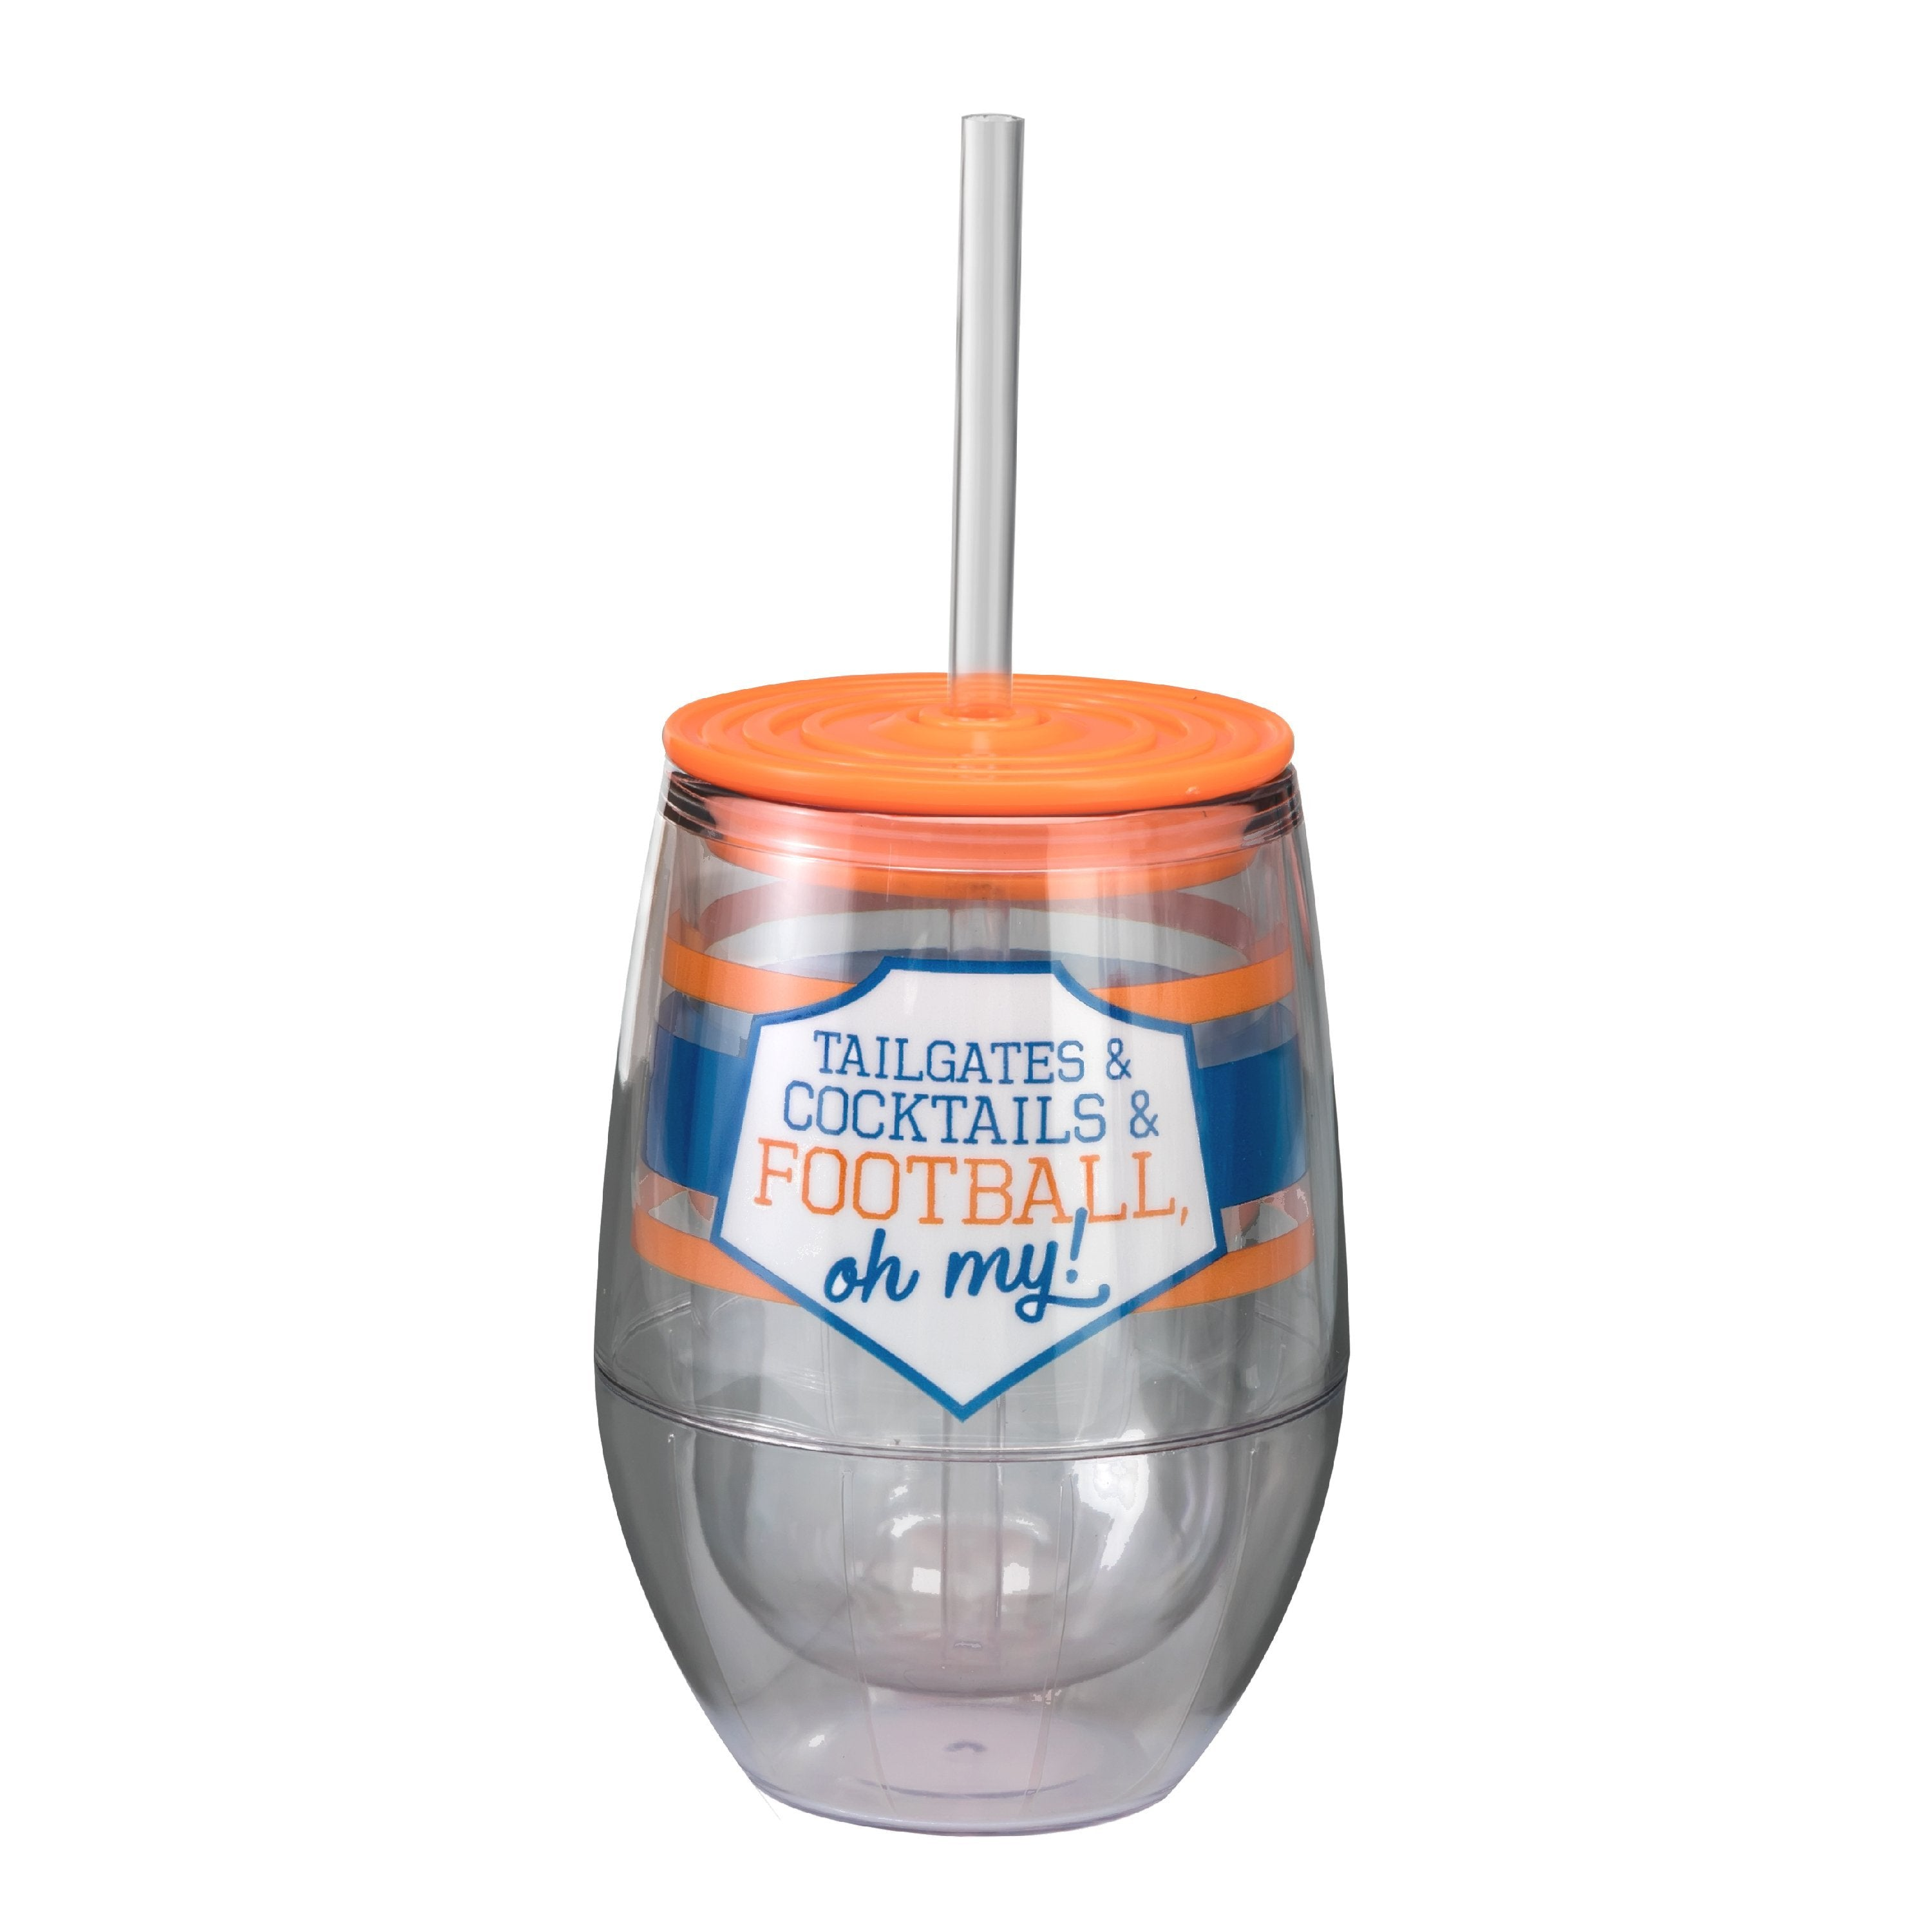 "Royal/Orange 12oz Acrylic Stemless Wine Cup - ""Tailgates & Cocktails & Football, Oh My!"""